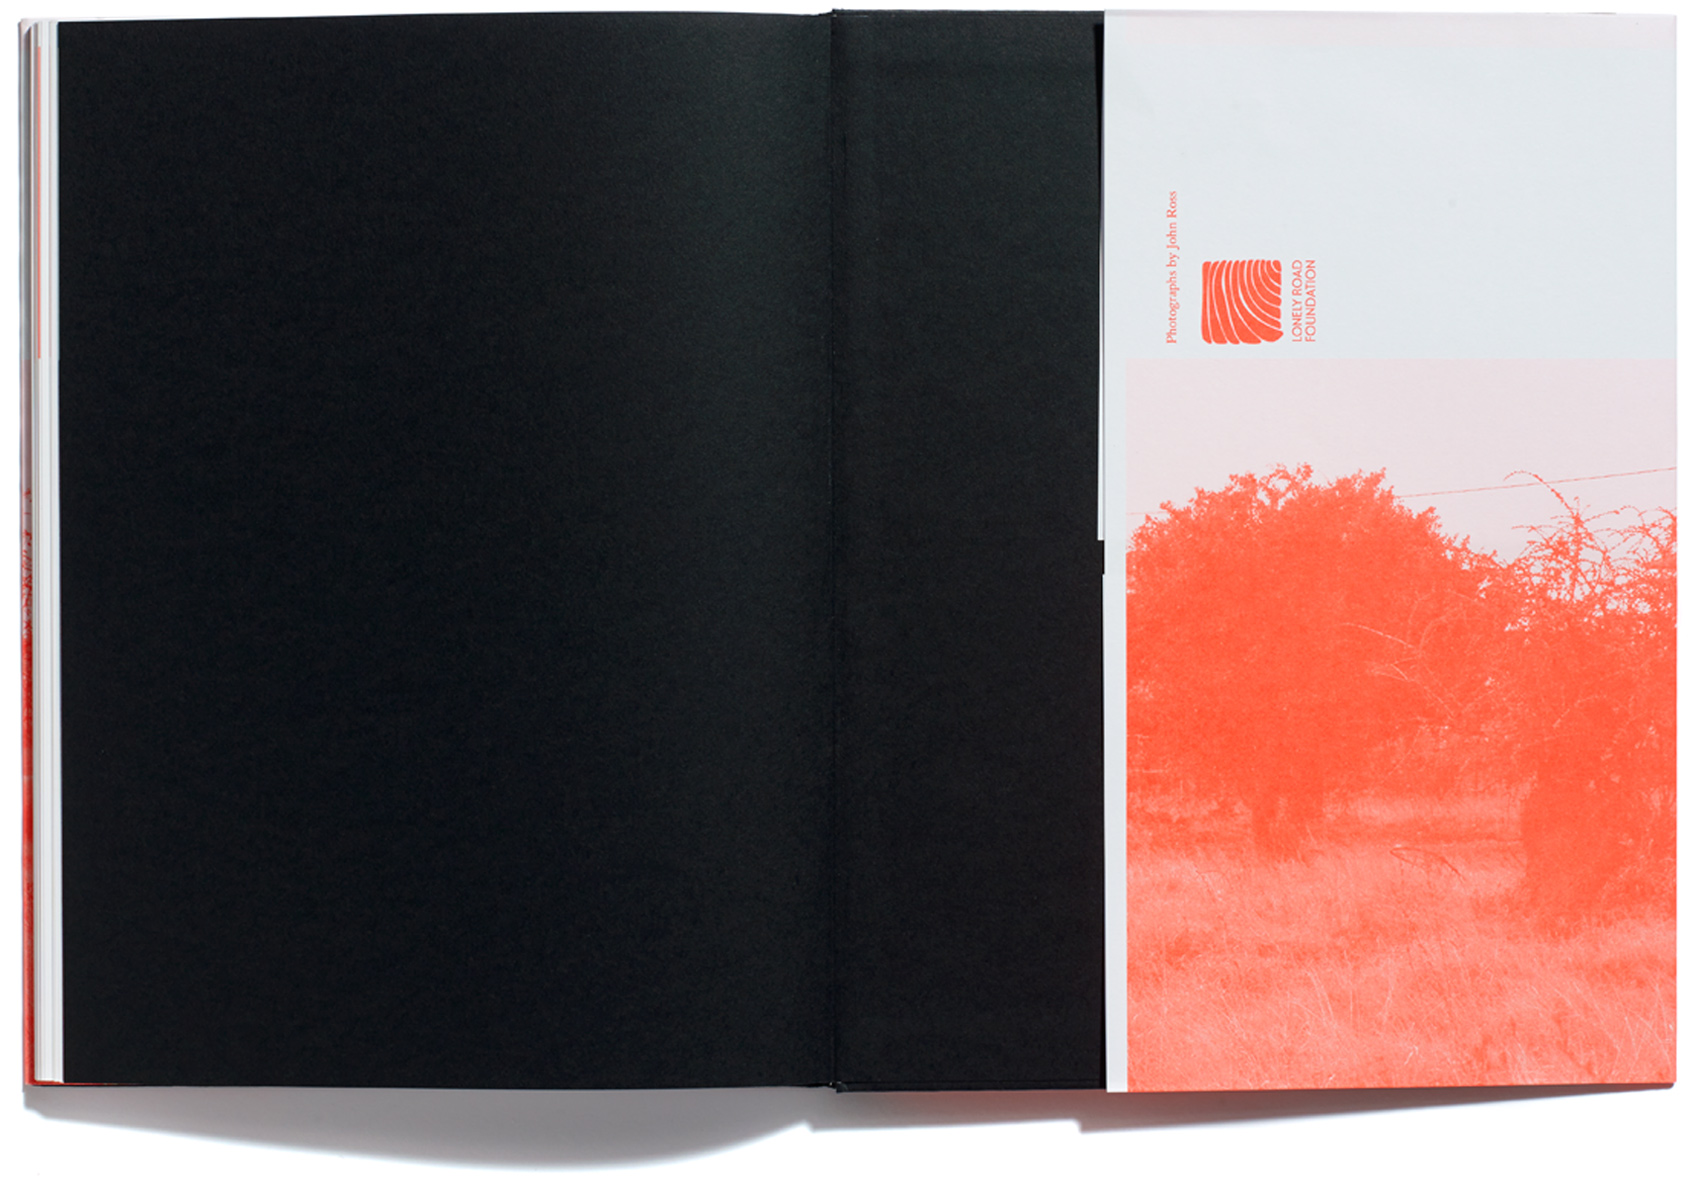 John Ross, The Lonely Road, published by Browns Editions, designed by Browns Design